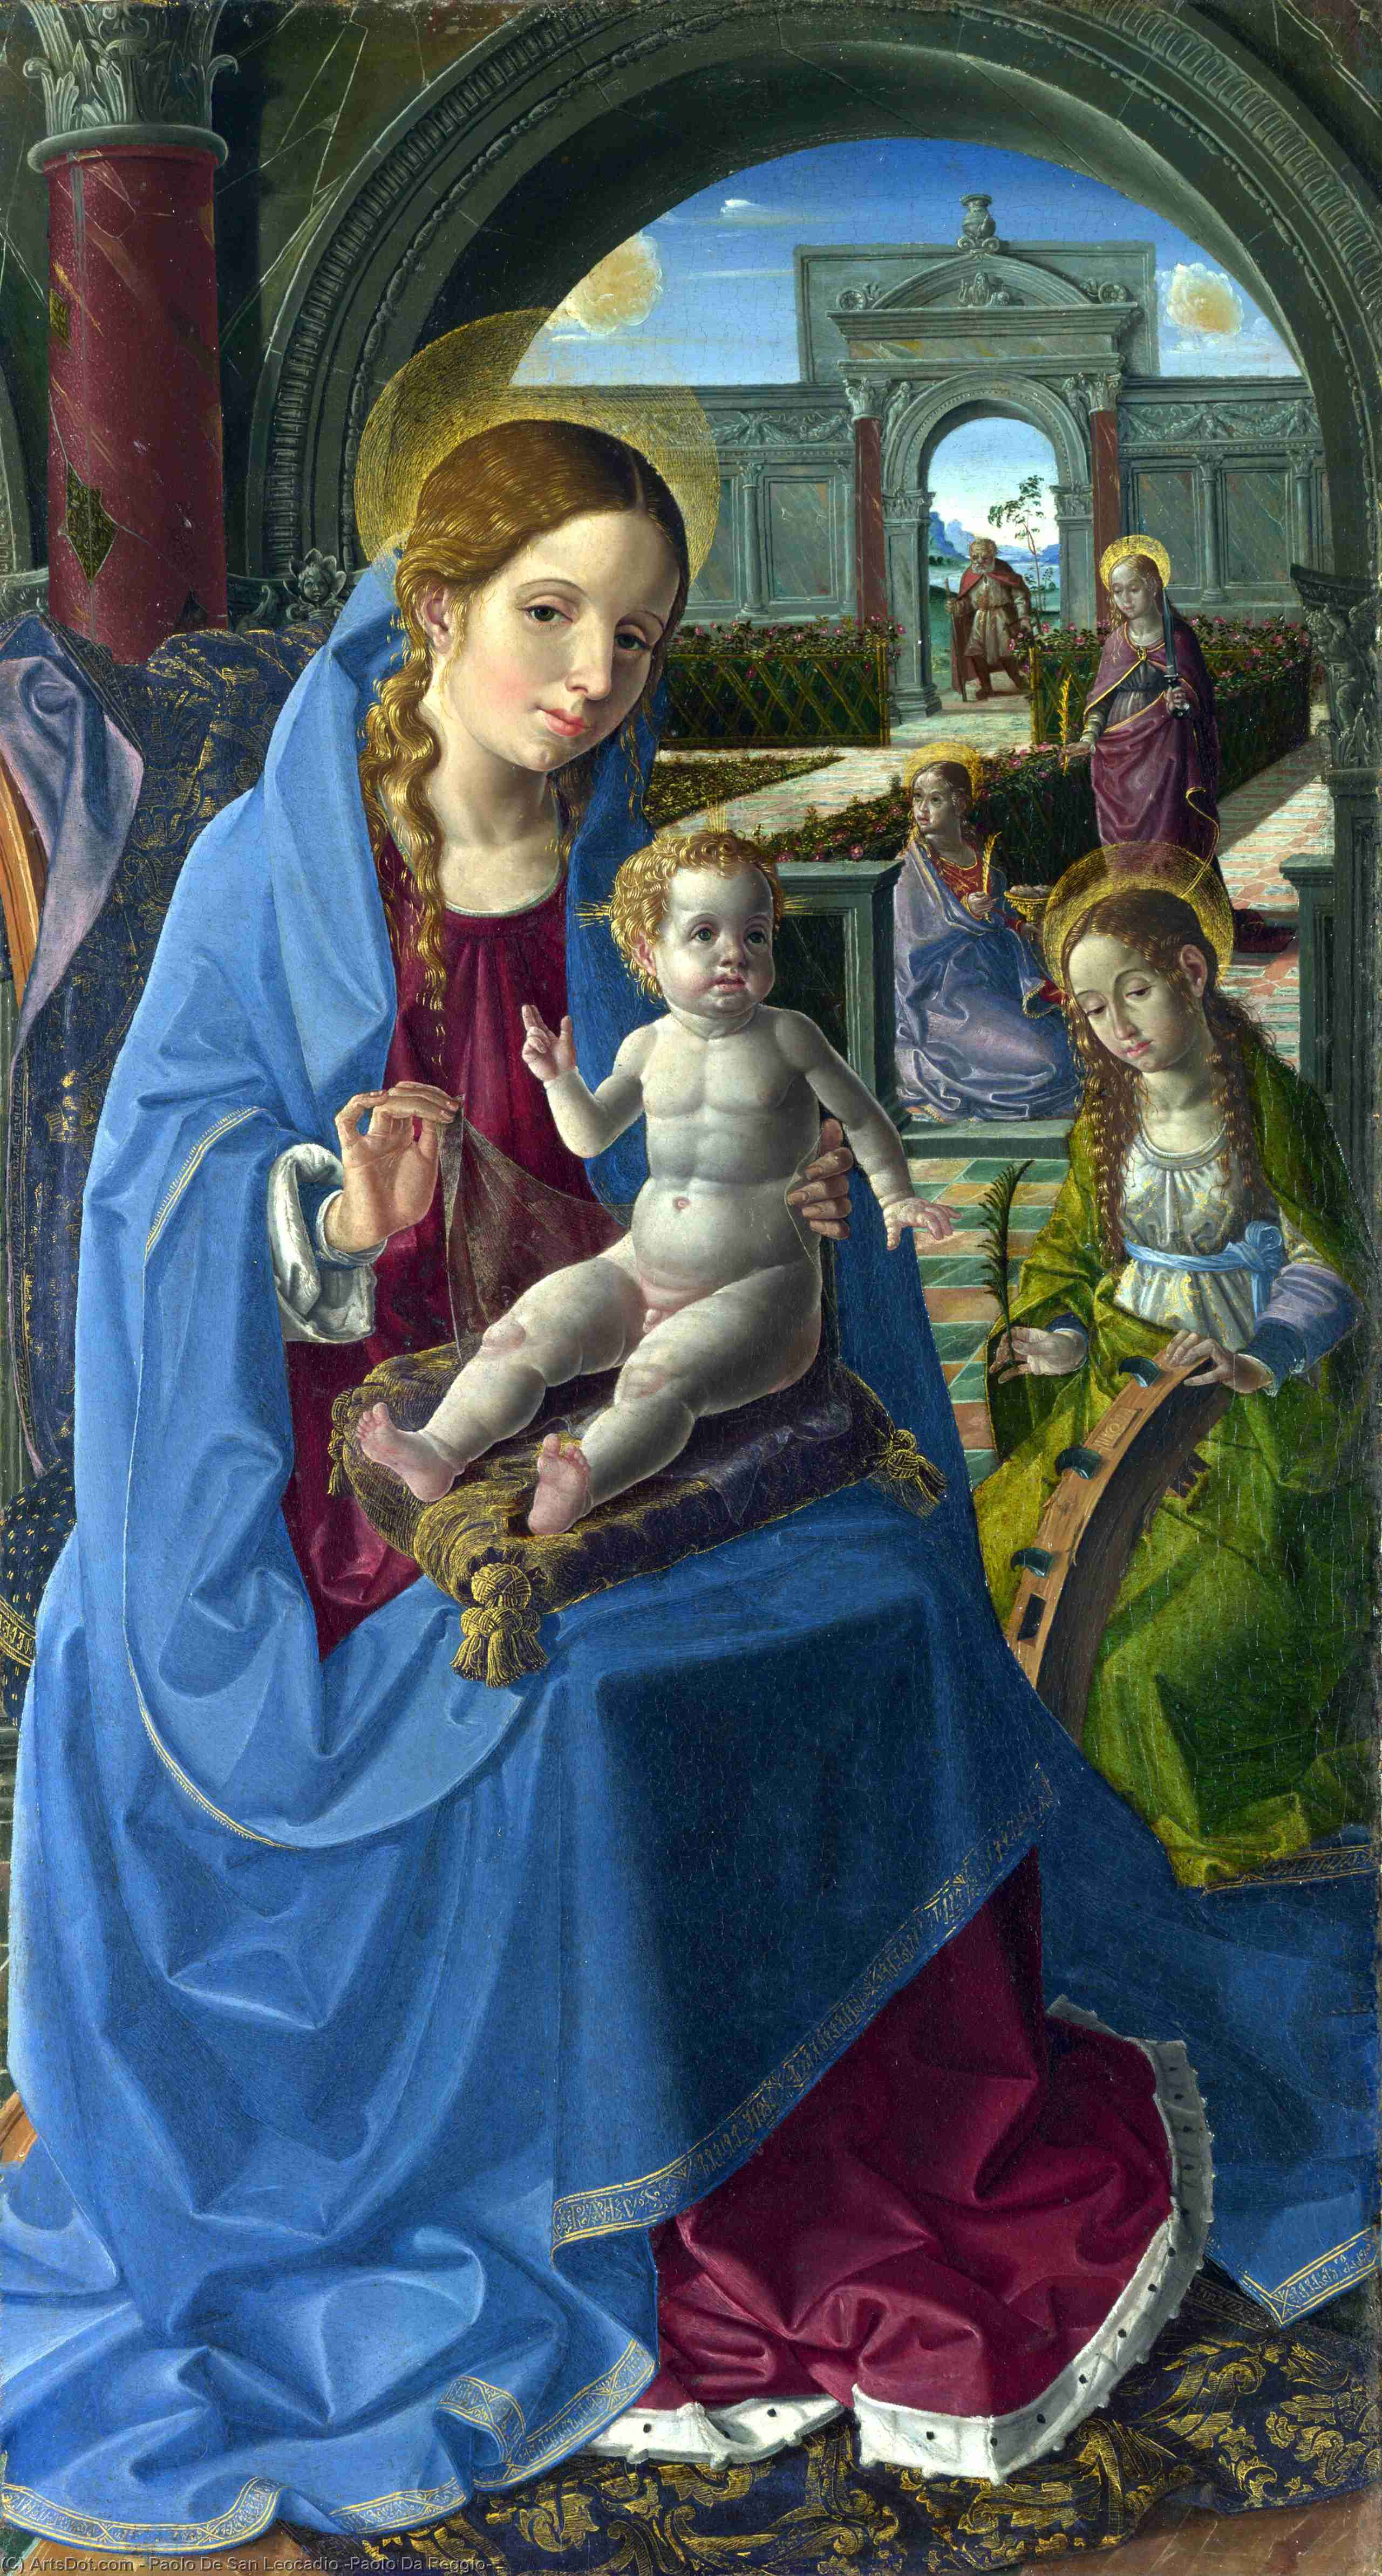 Wikioo.org - The Encyclopedia of Fine Arts - Painting, Artwork by Paolo De San Leocadio (Paolo Da Reggio) - The Virgin and Child with Saints